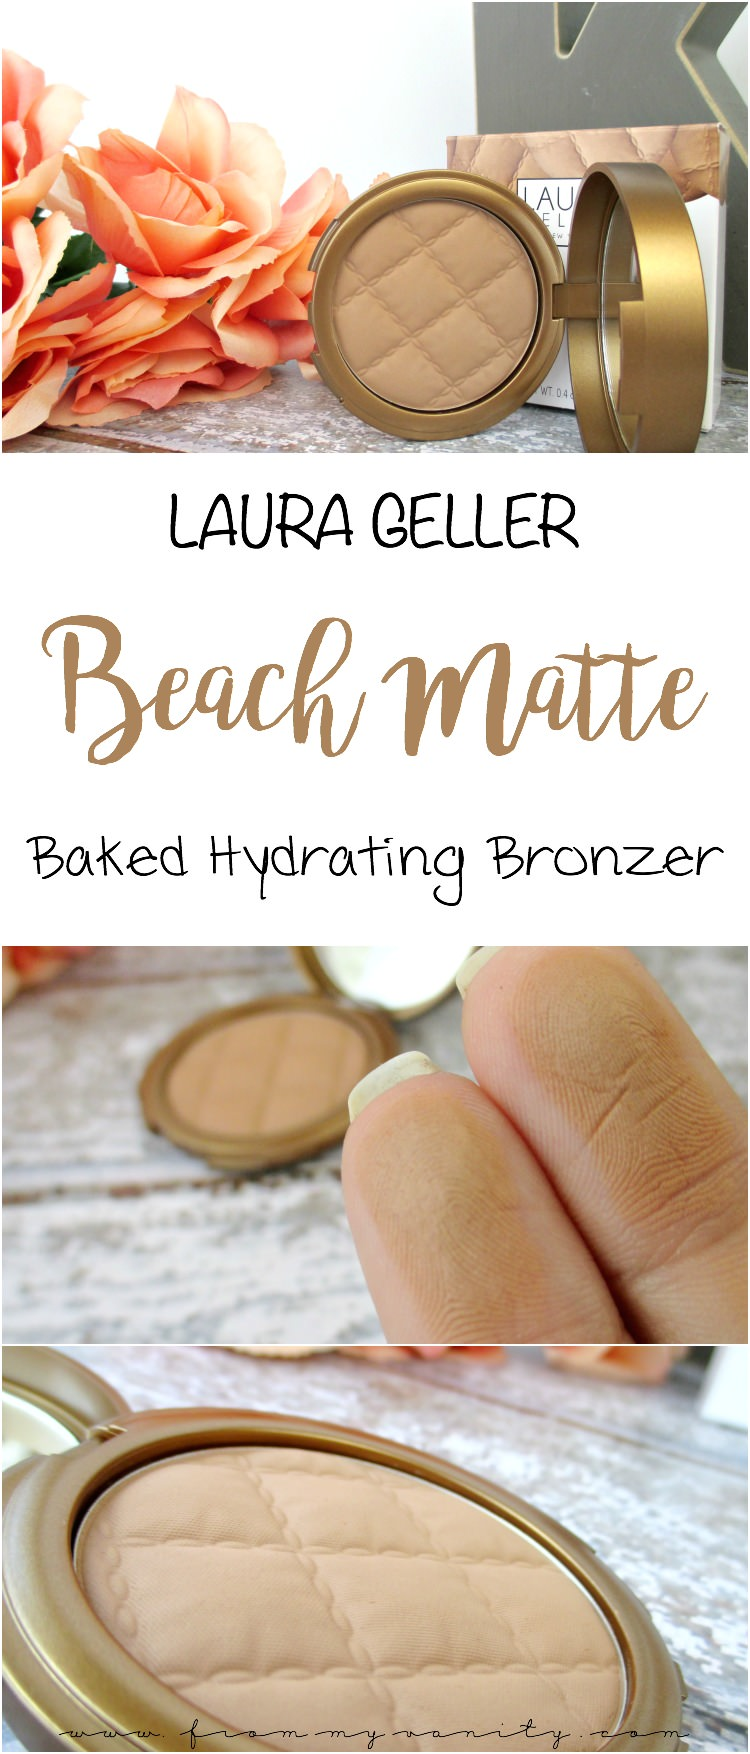 Laura geller beach matte hydrating baked bronzer review for Perfect bake pro review